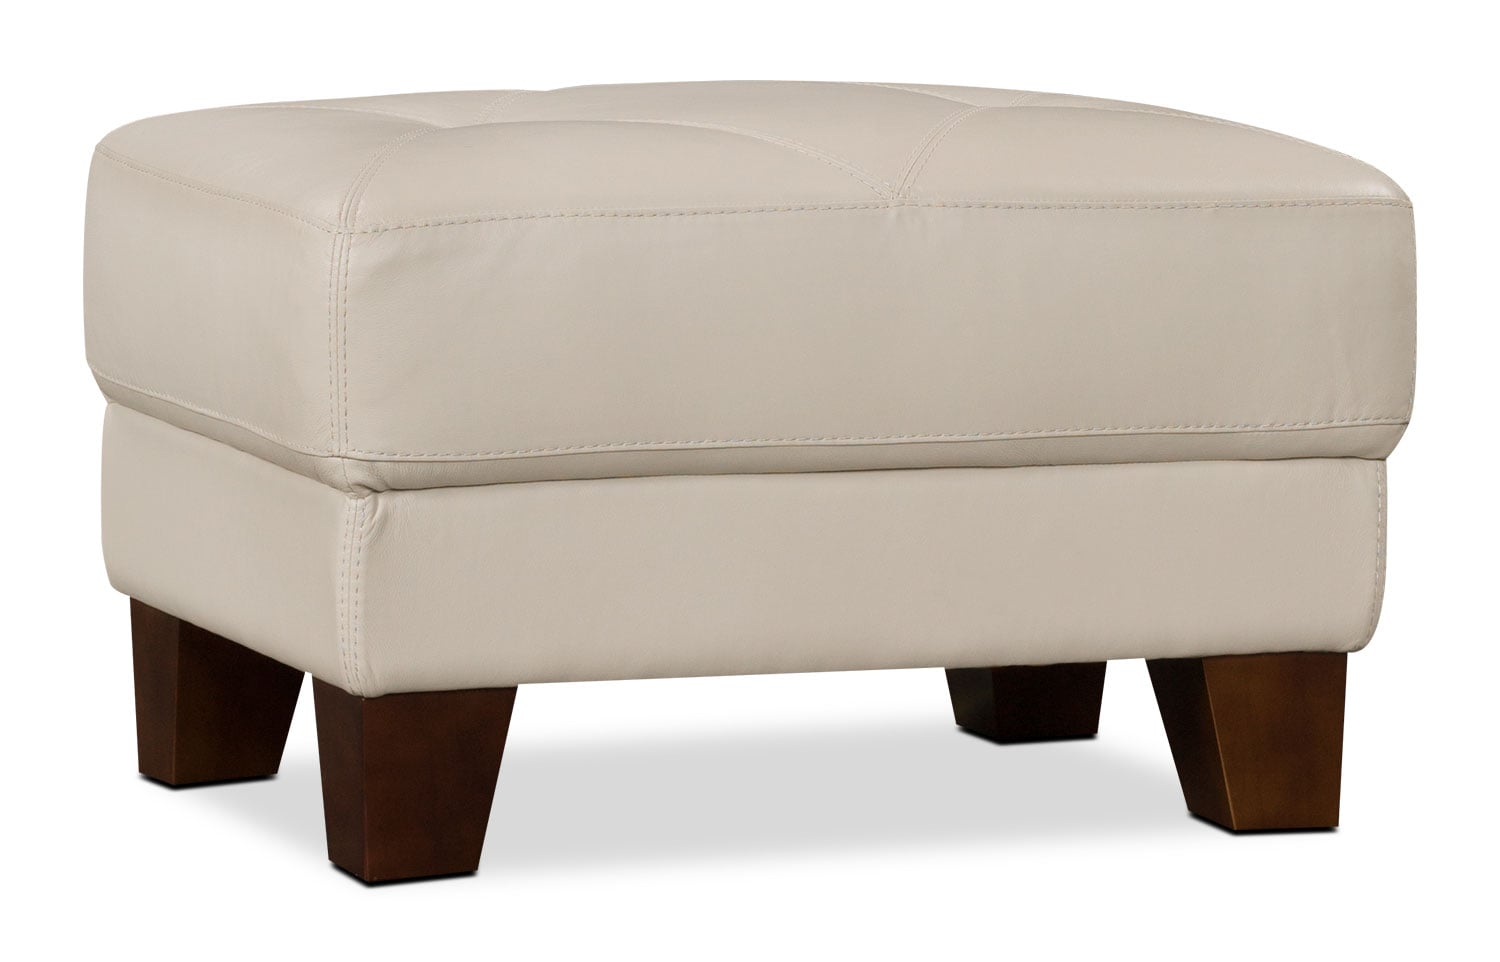 Living Room Furniture - Vita 100% Genuine Leather Ottoman – Smoke